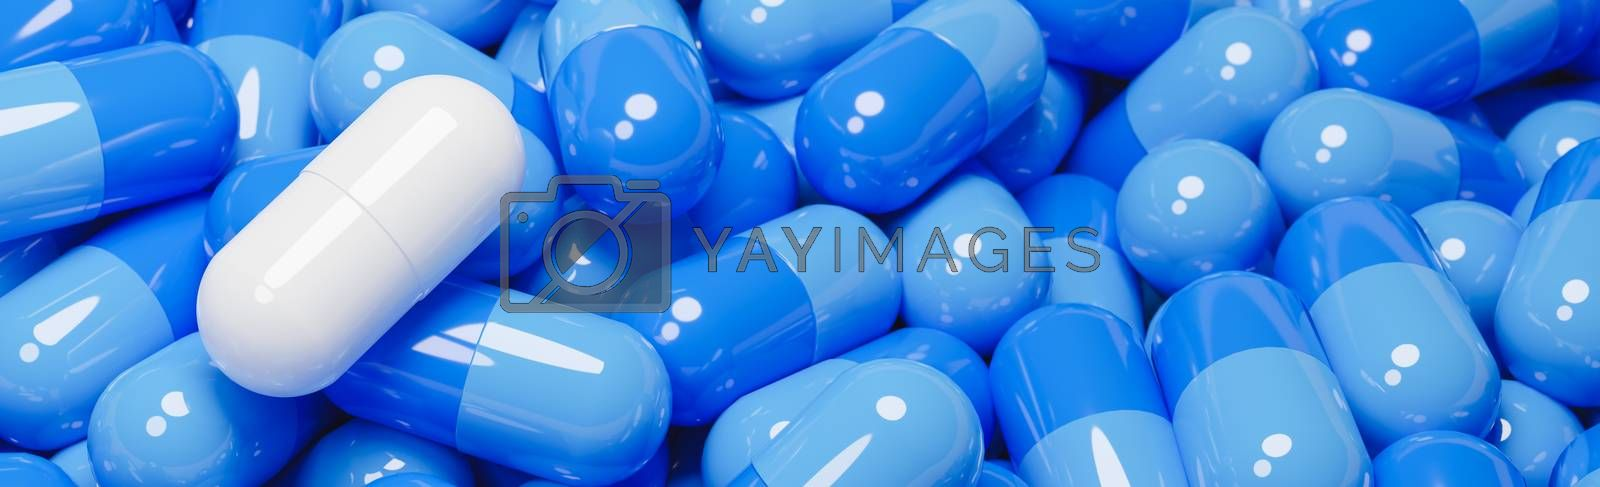 Close up of white pill capsule in many blue pills capsules. Medicine and Specialty Pharmaceuticals concept.,3d model and illustration.